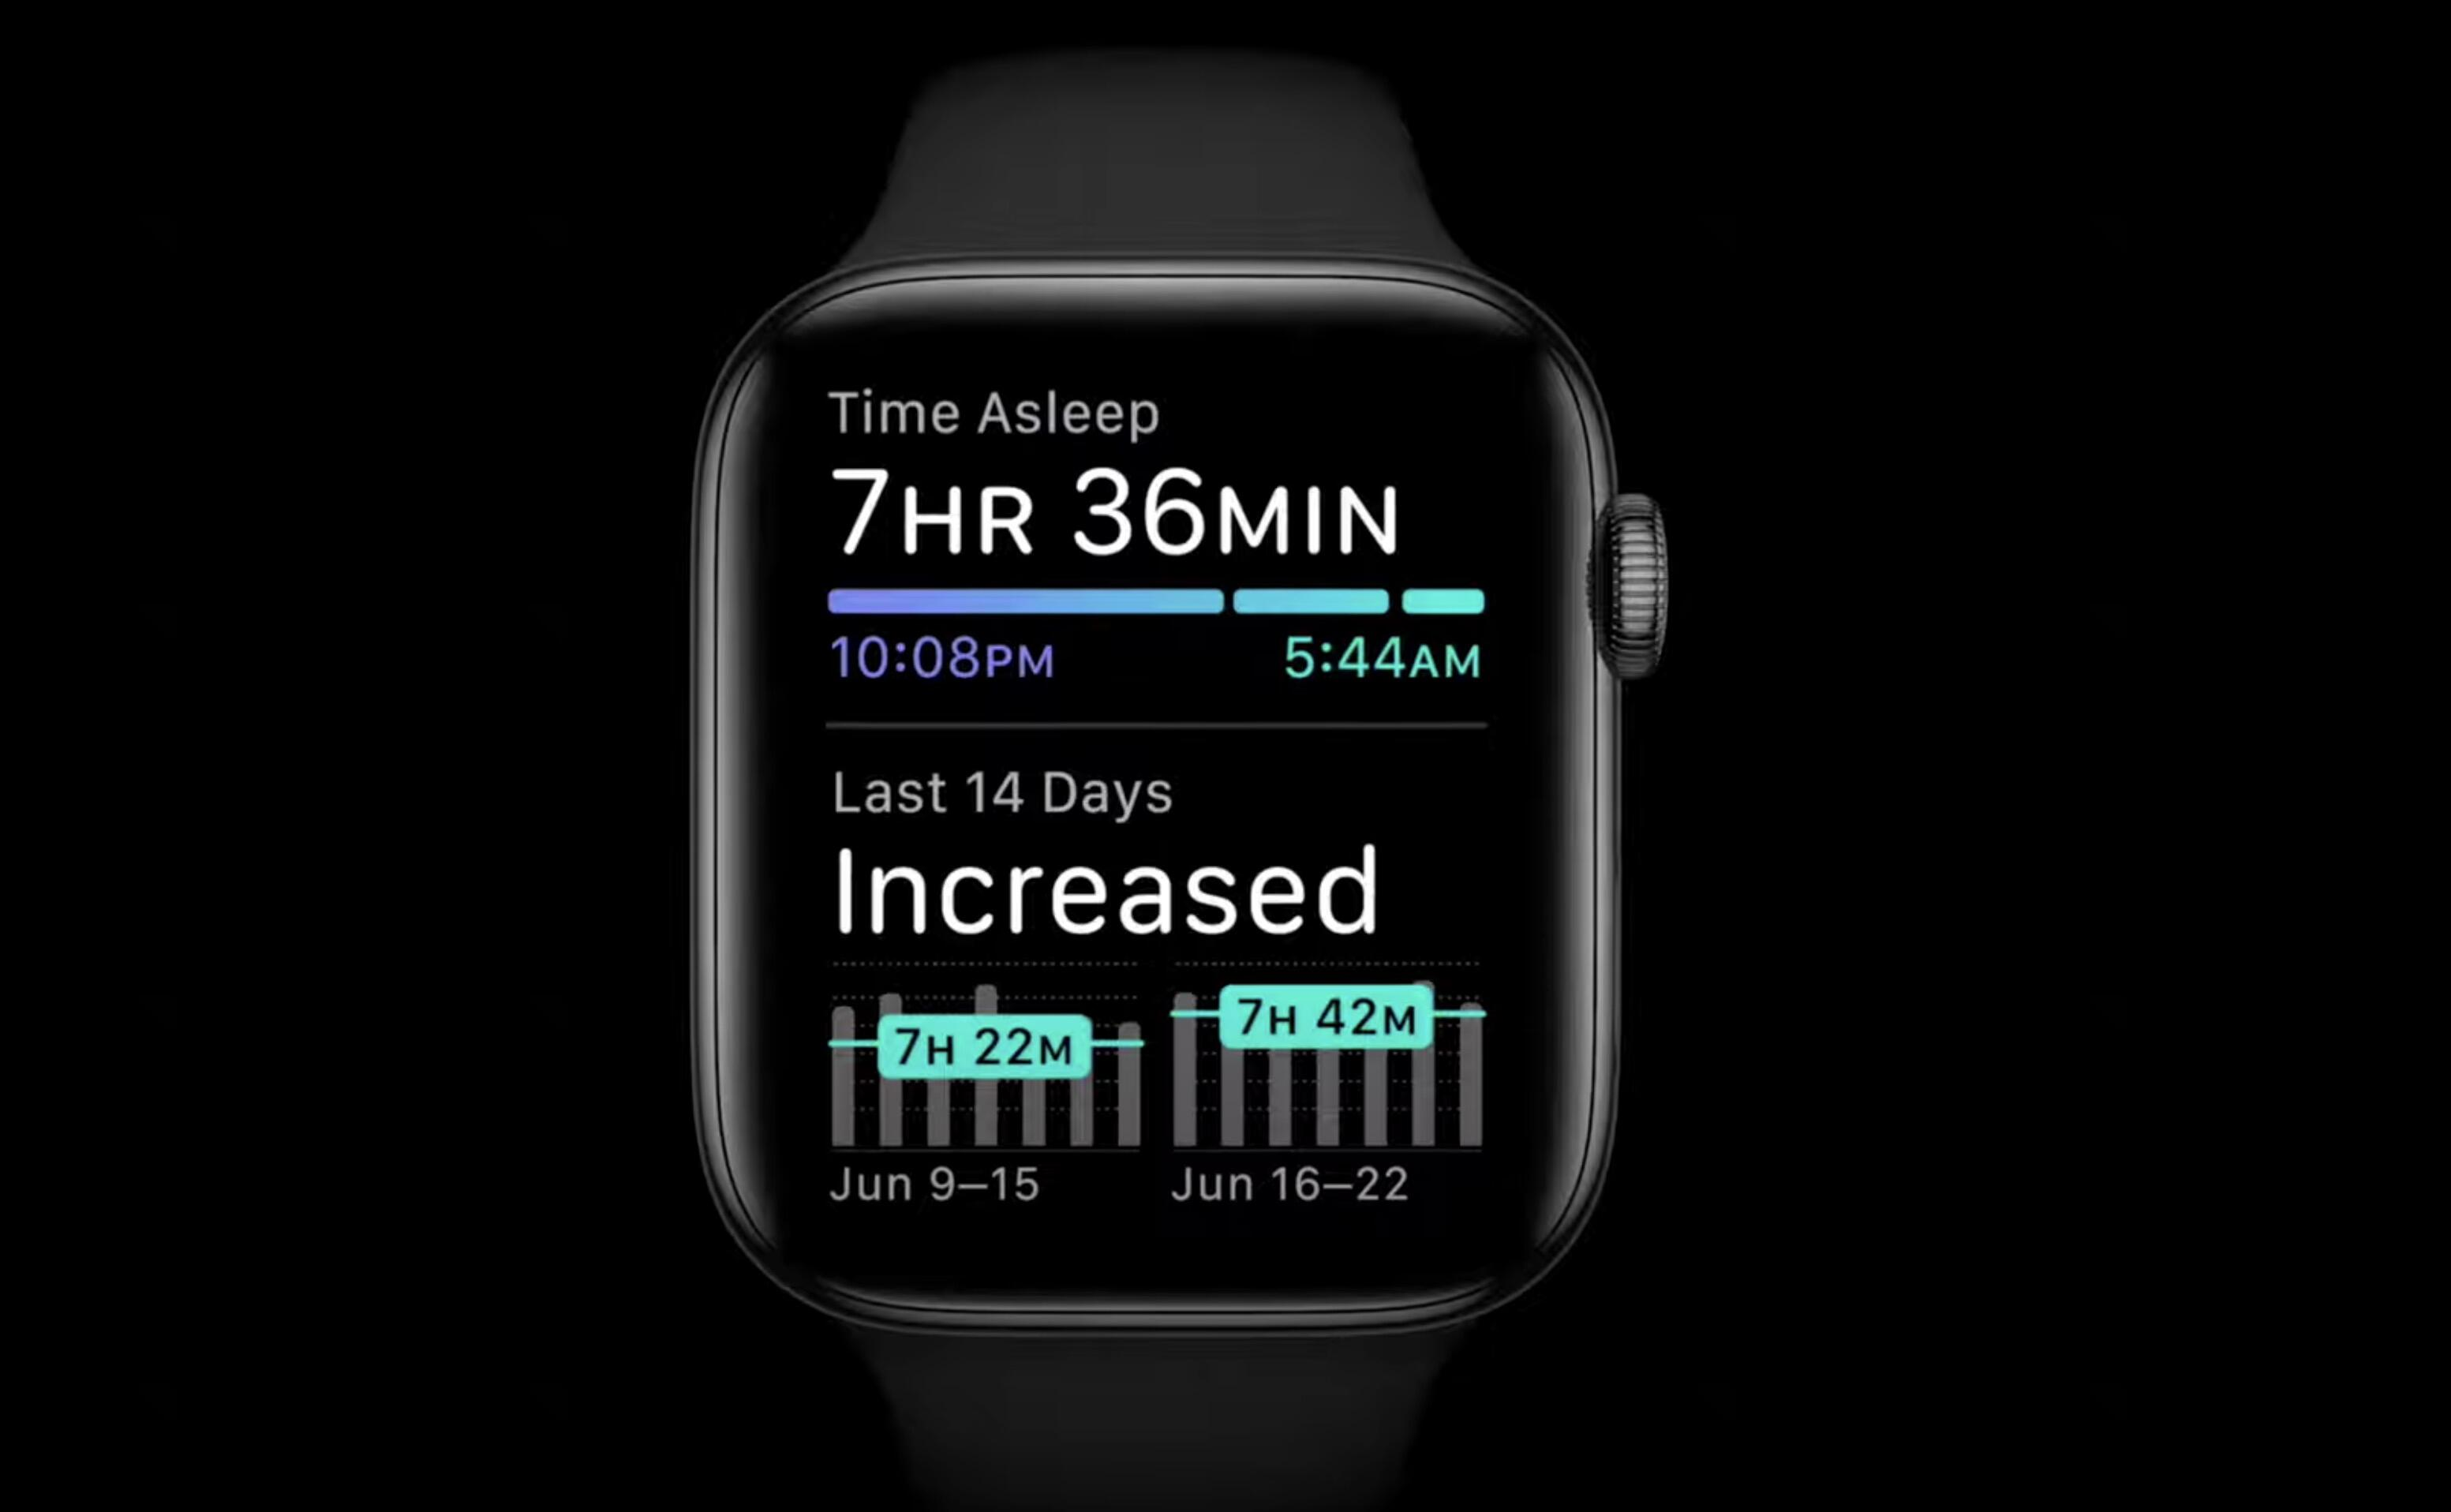 sleep-tracking-watchos-7